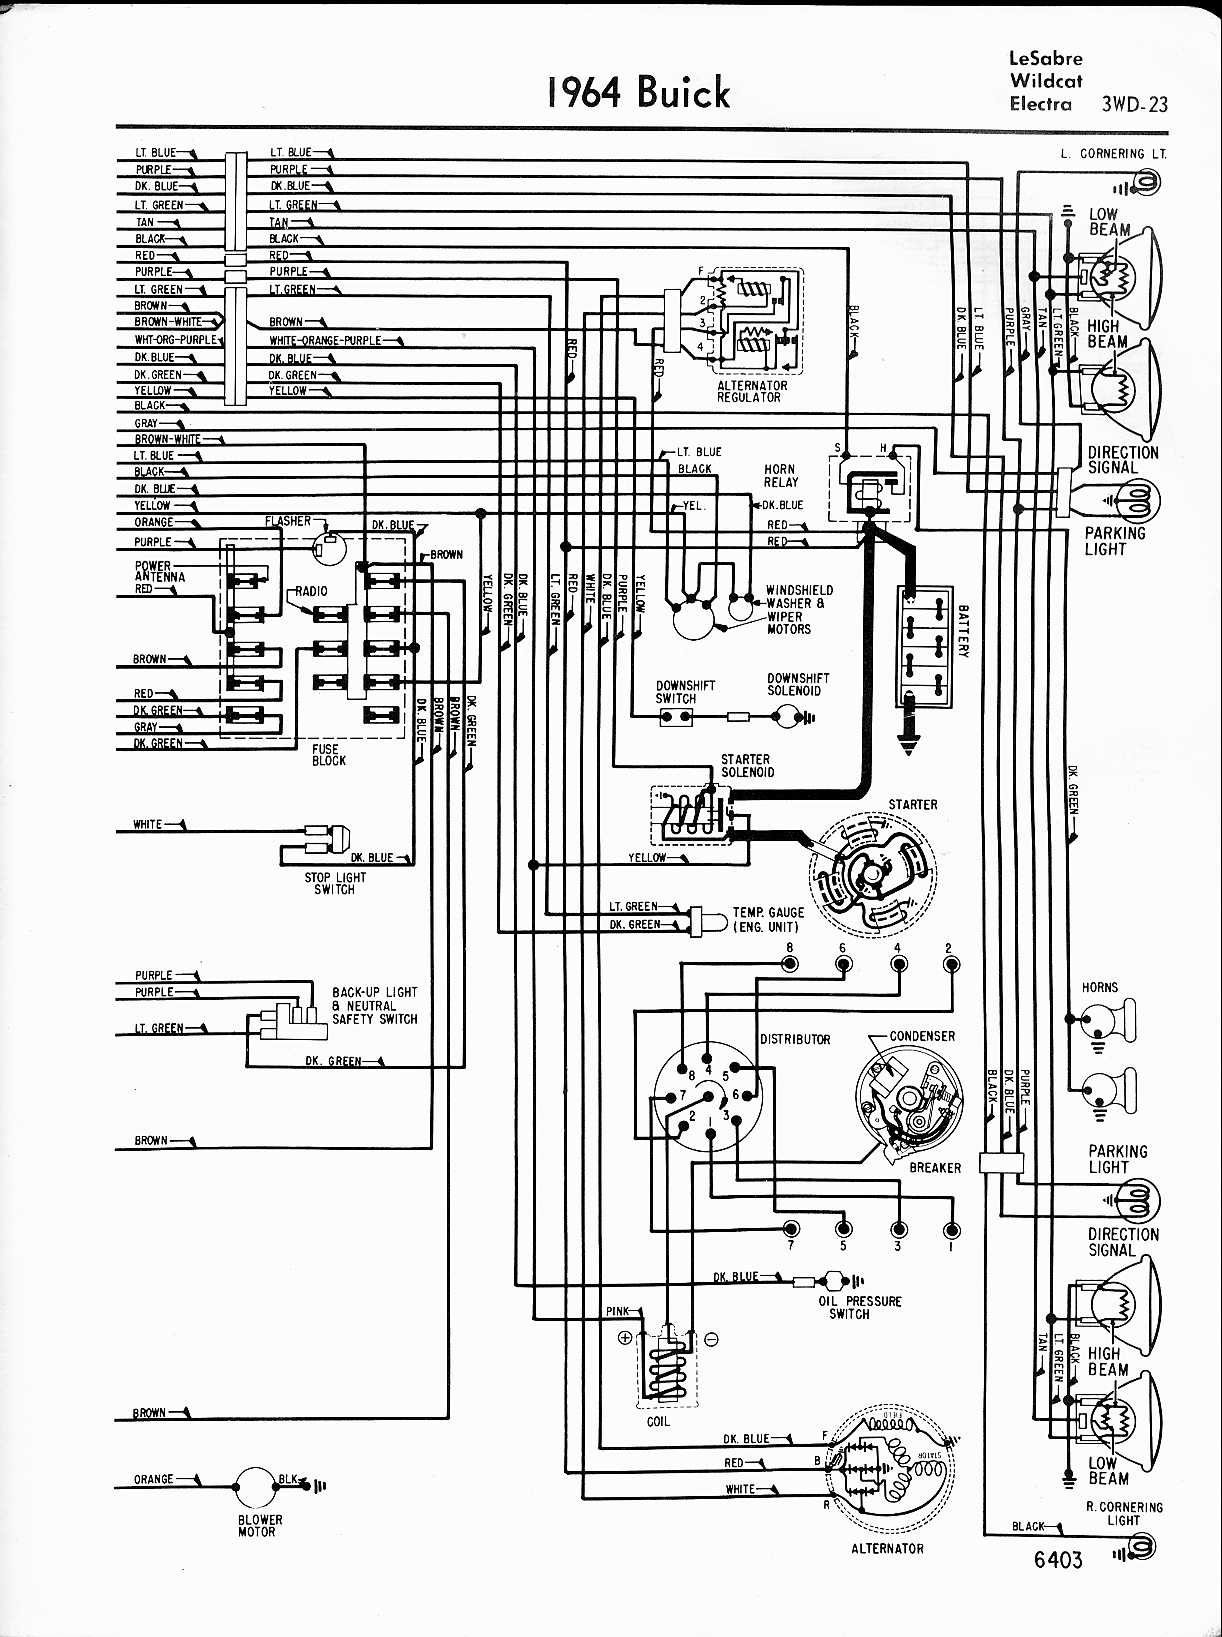 Buick wiring diagrams 1957 1965 1964 lesabre wildcat electra right half asfbconference2016 Choice Image